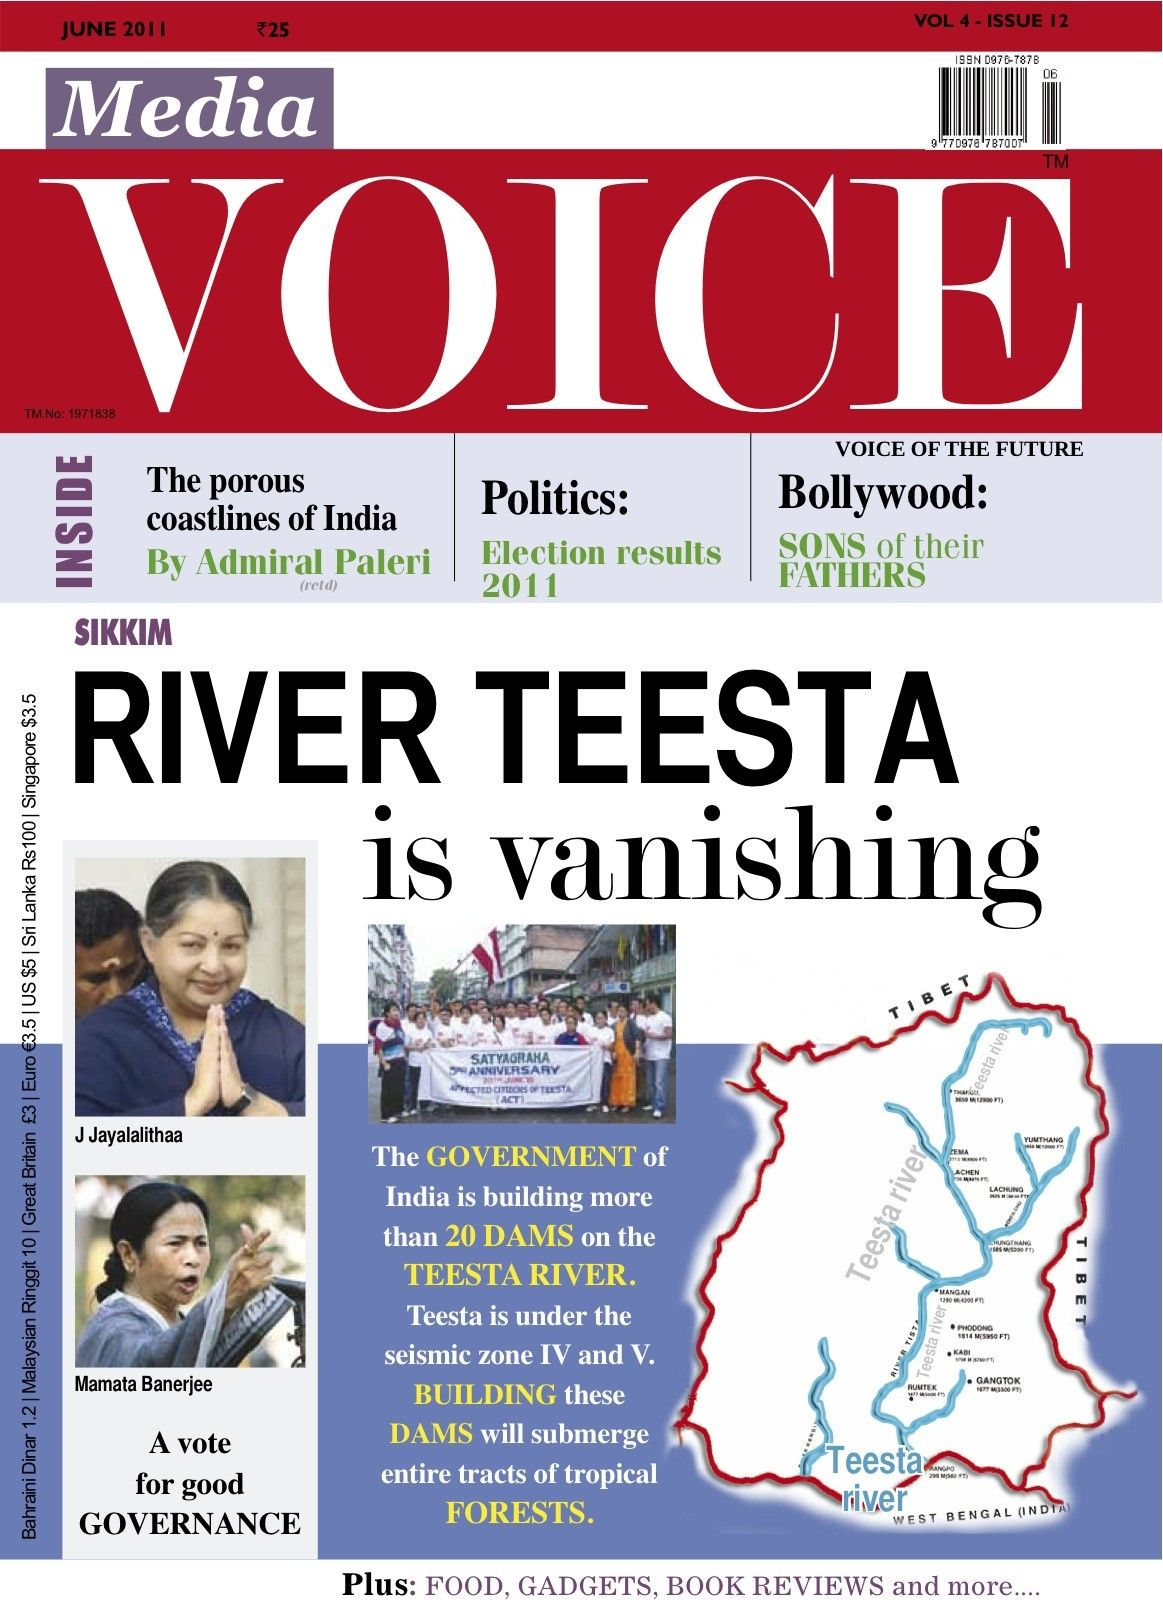 Media Voice Magazine - Buy, Subscribe, Download and Read